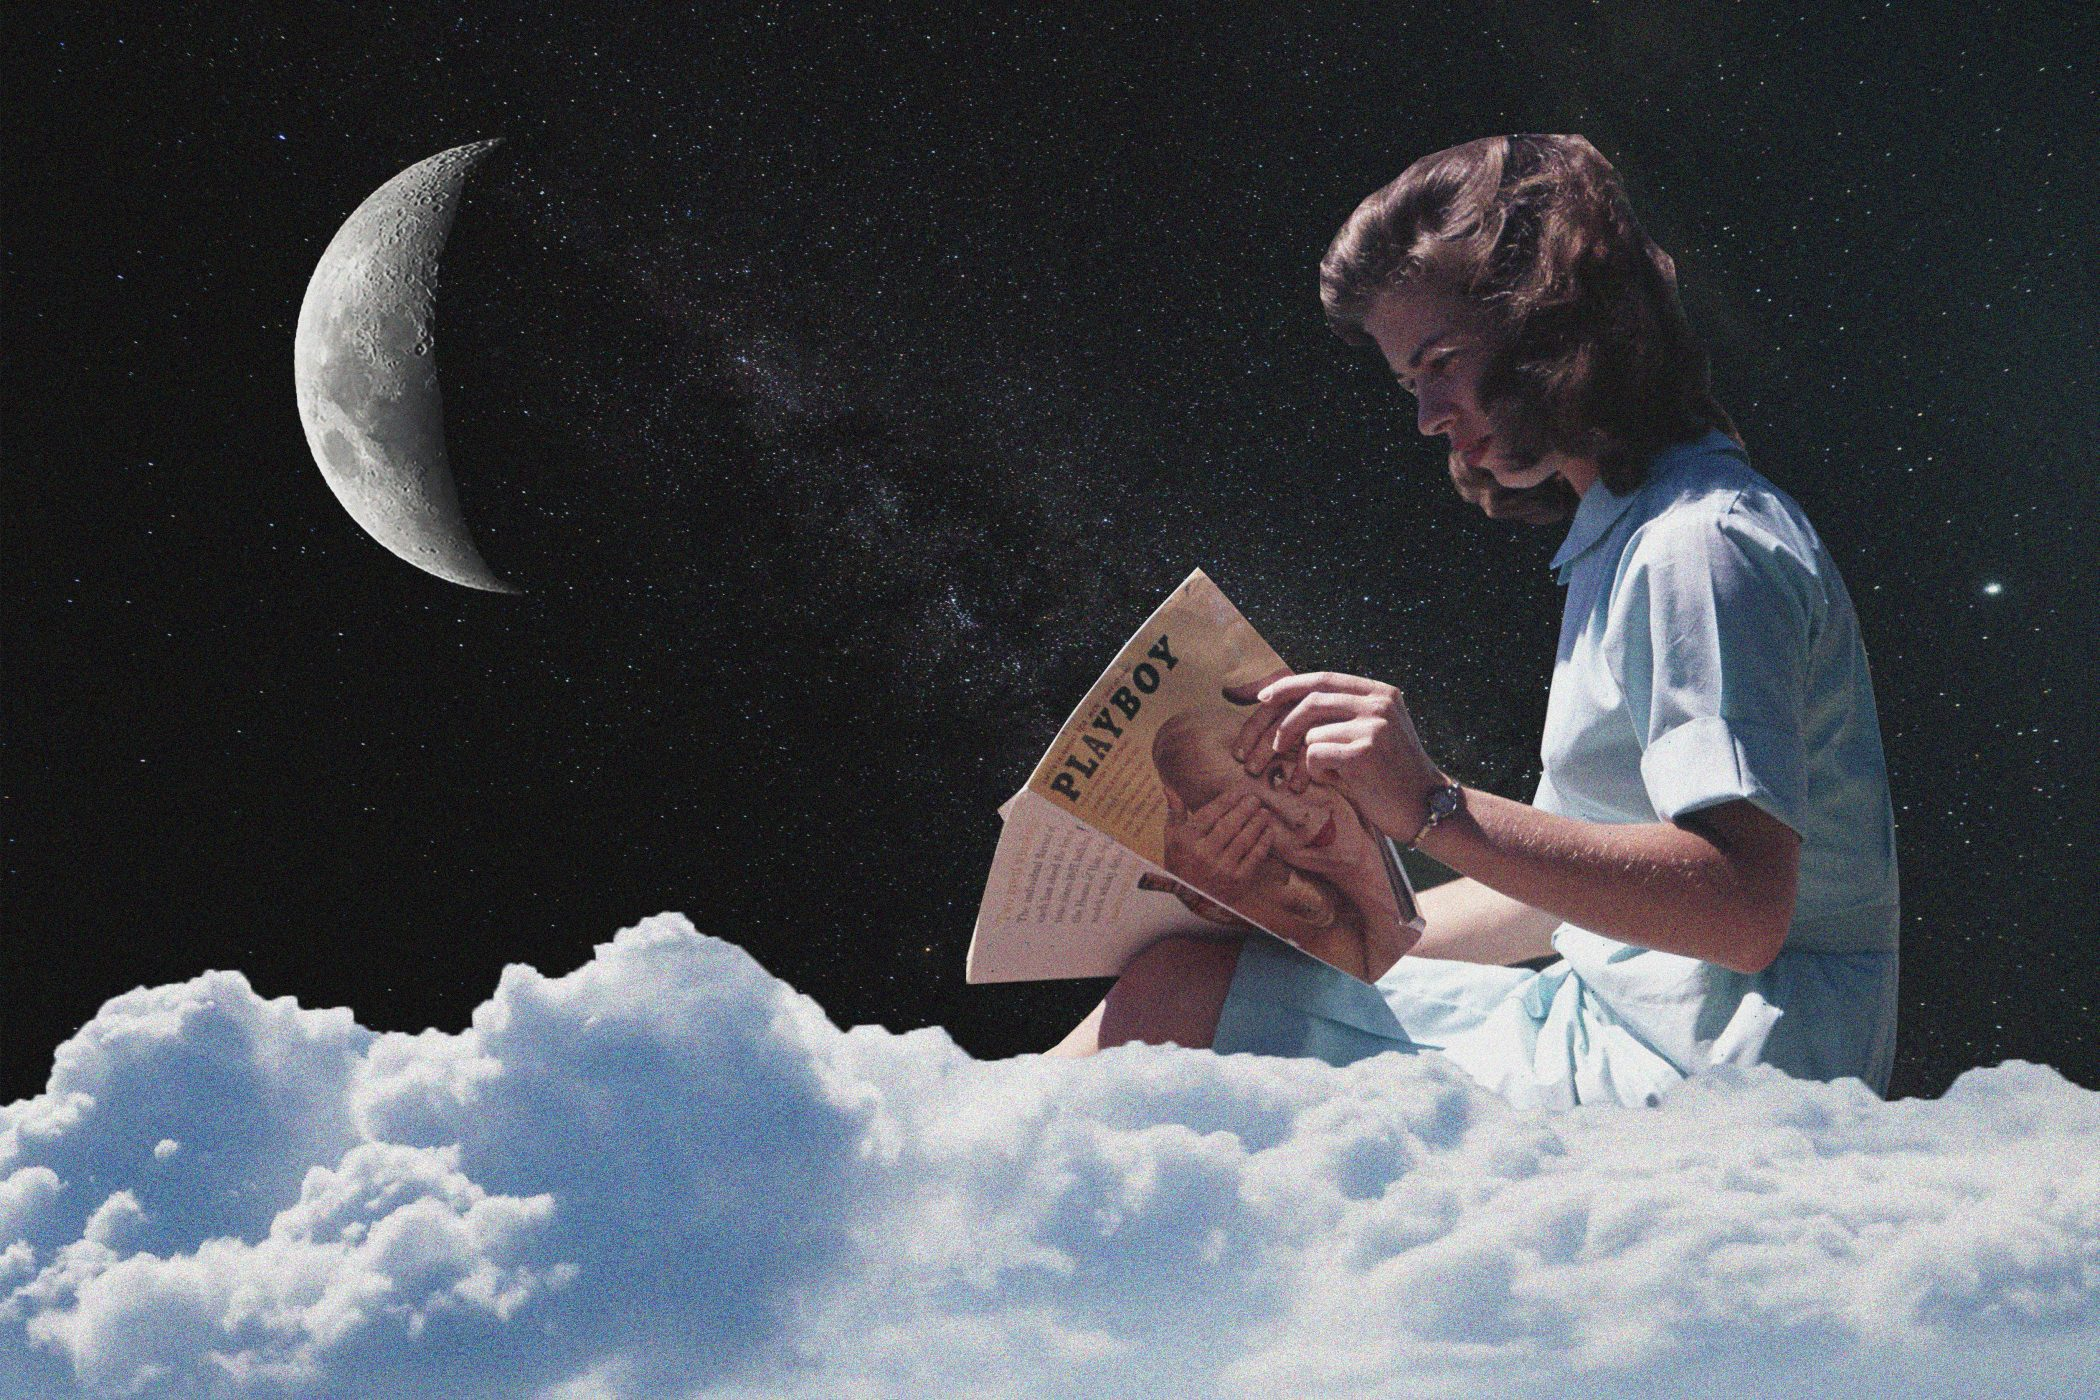 Woman sitting on cloud reading playboy magazine with universe and crescent moon behind her